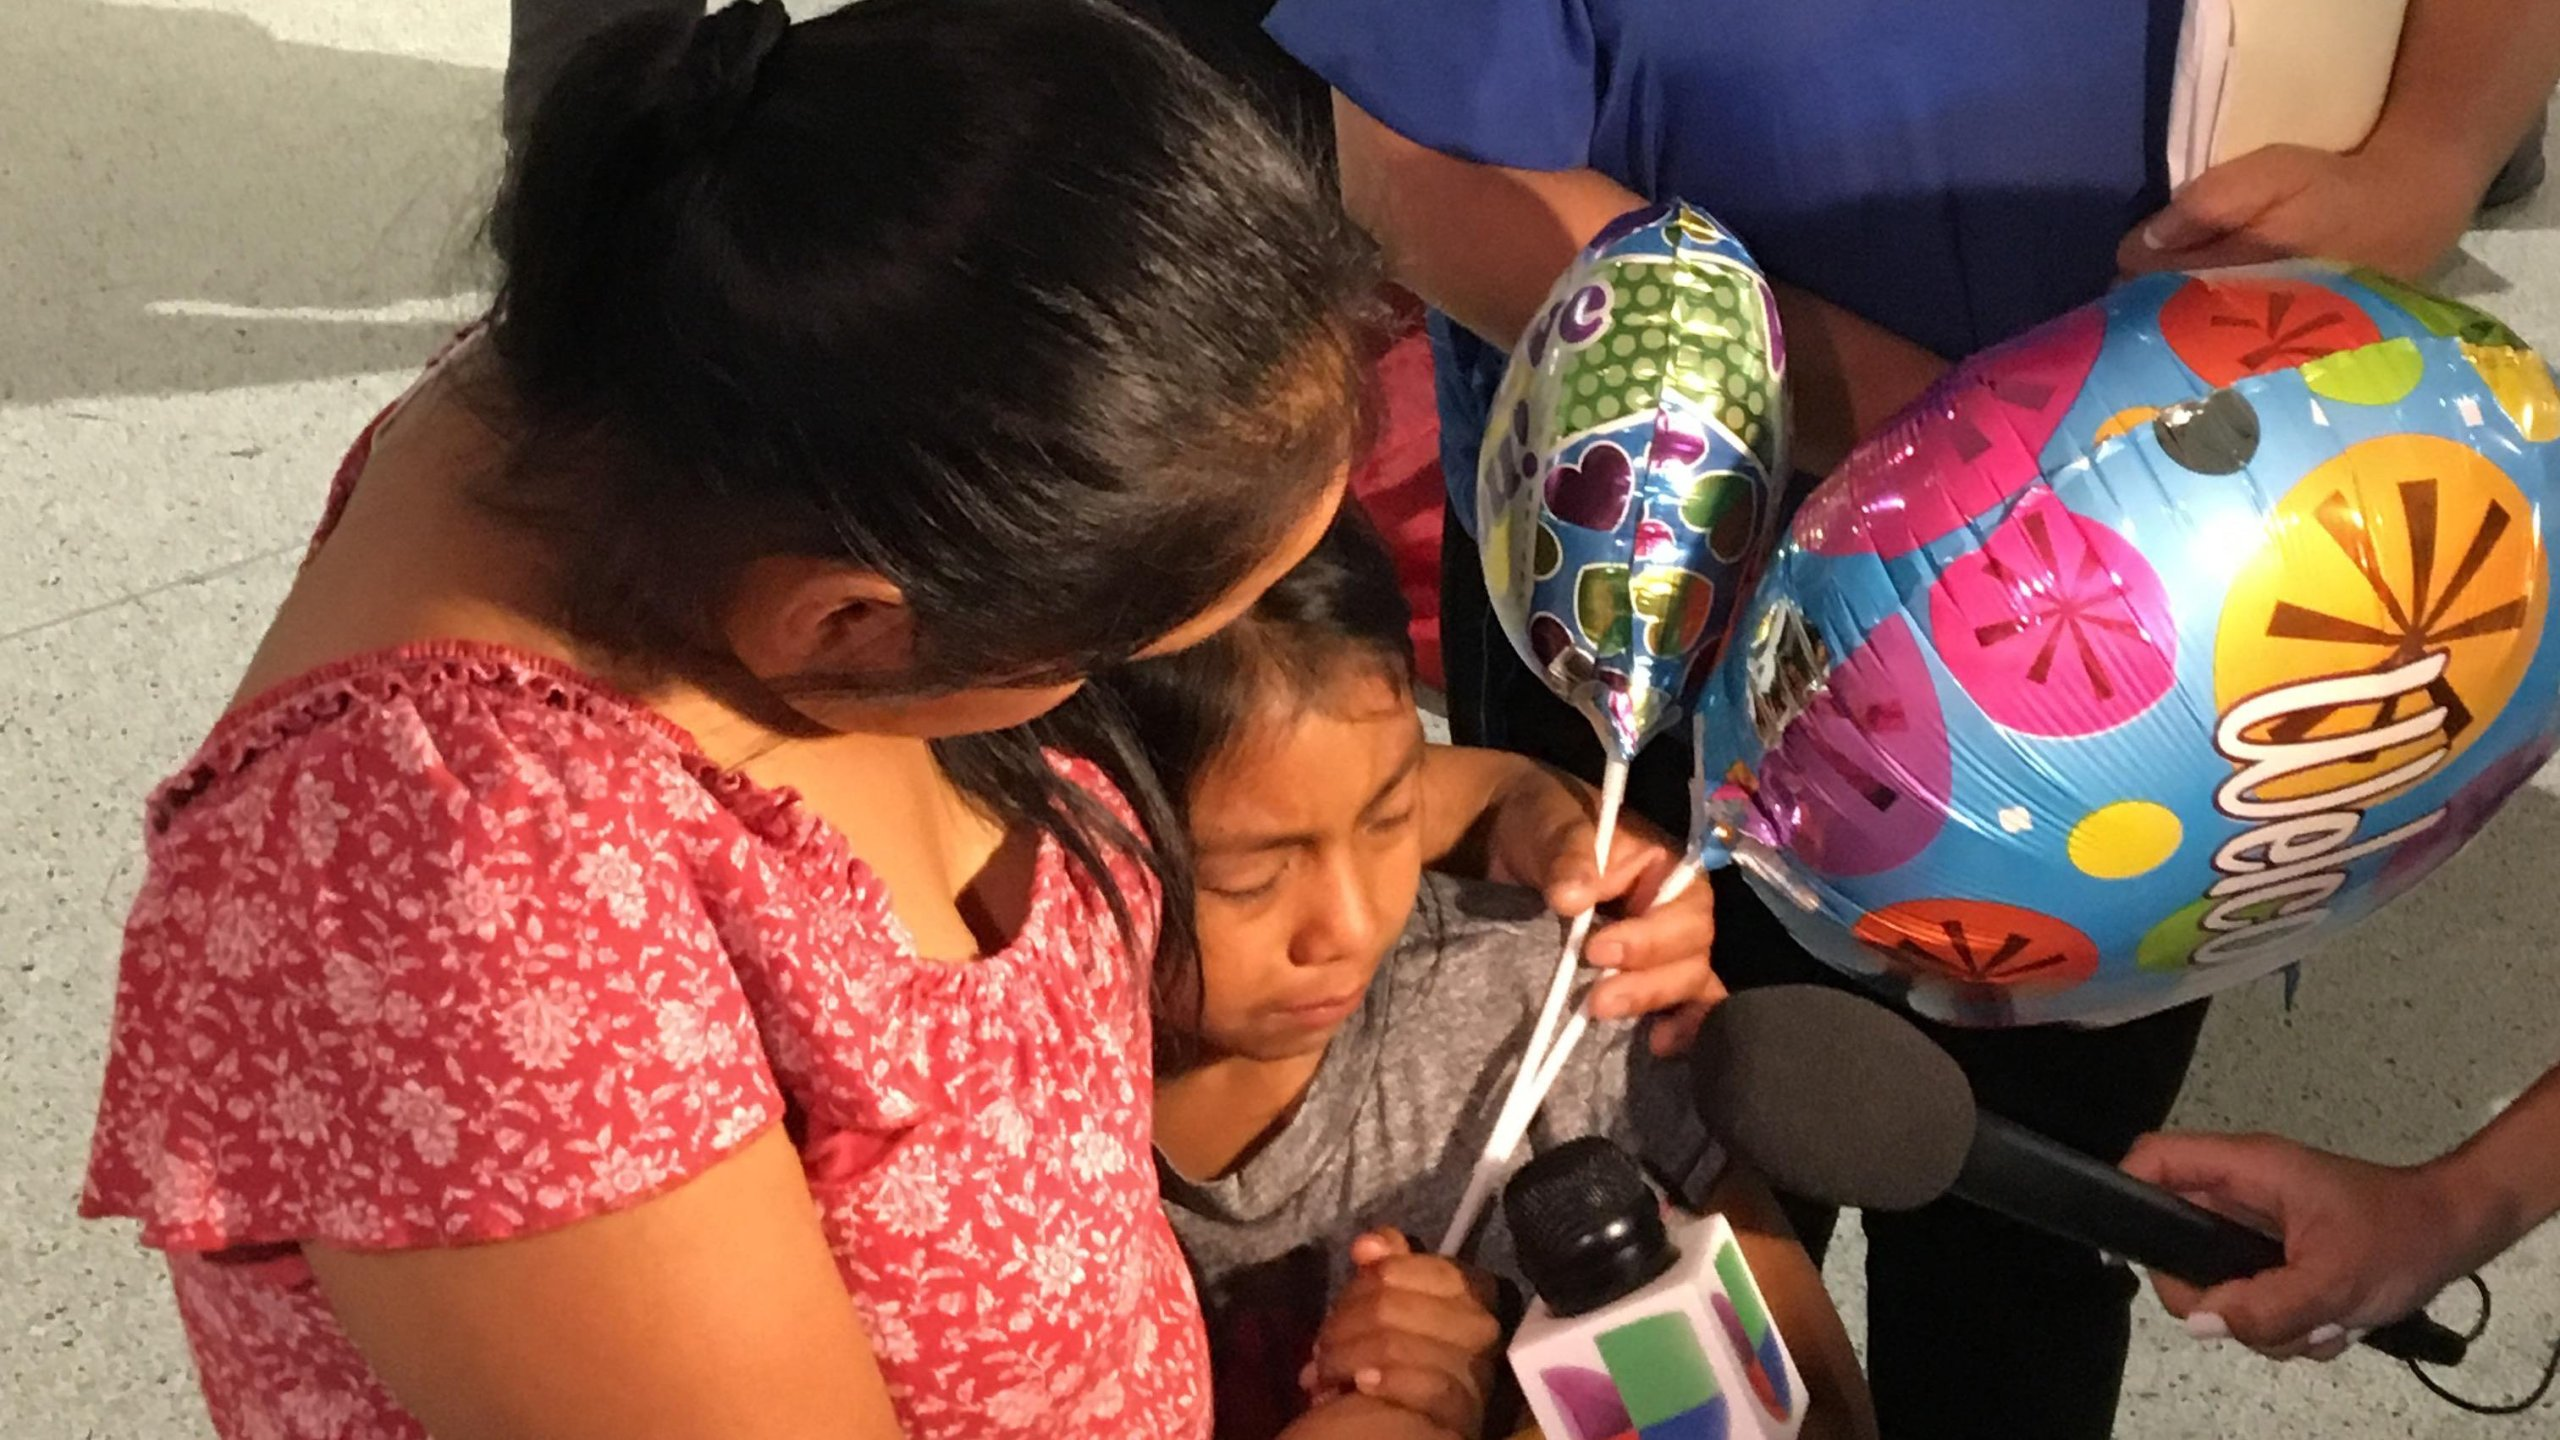 Buena Ventura Martin-Godinez and her 7-year-old daughter were reunited at Miami-Dade airport after being separated for nearly 2 months. (Credit: CNN)